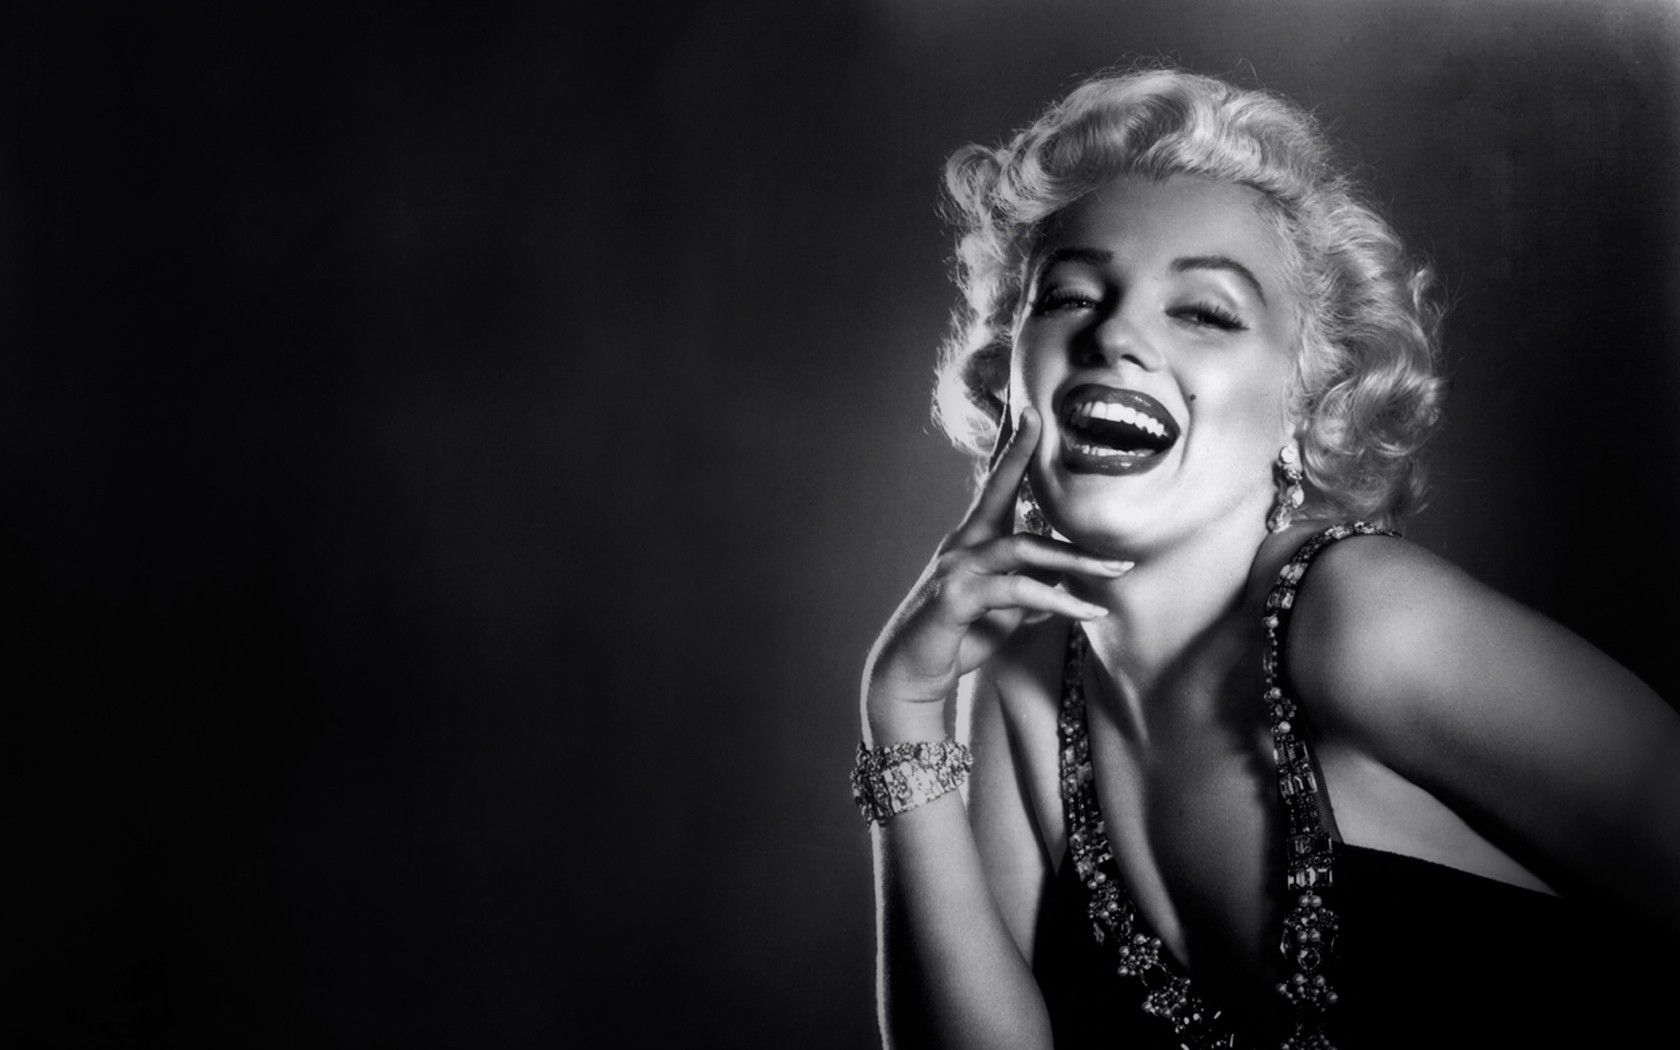 Wallpaper Marilyn Monroe